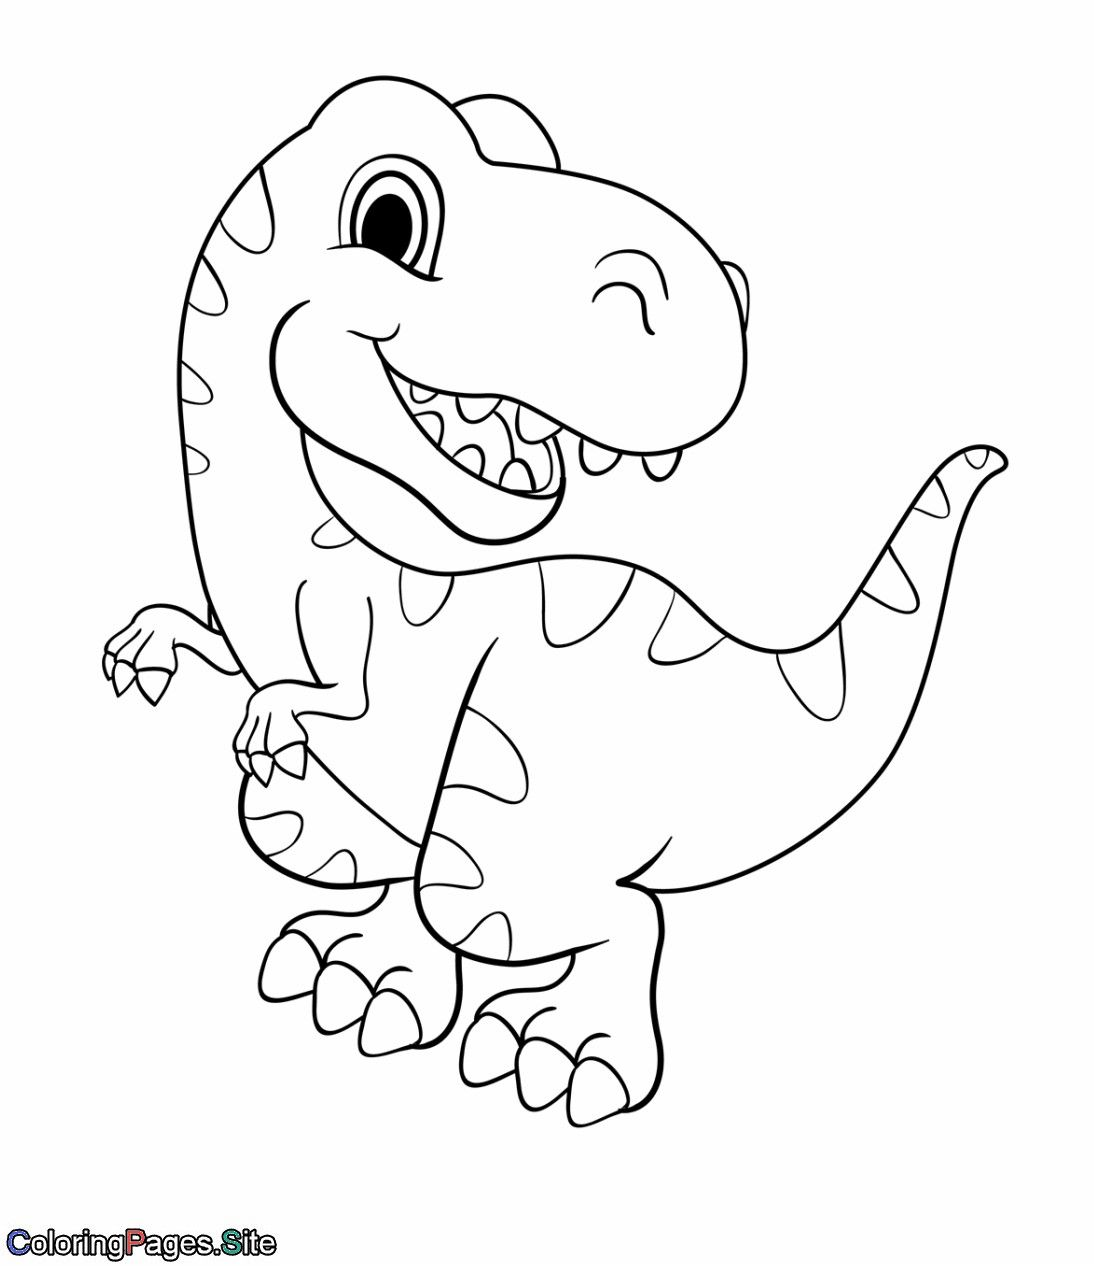 21 Great Photo Of Dinosaur Coloring Pages Entitlementtrap Com In 2020 Dinosaur Coloring Pages Dinosaur Coloring Sheets Dinosaur Coloring